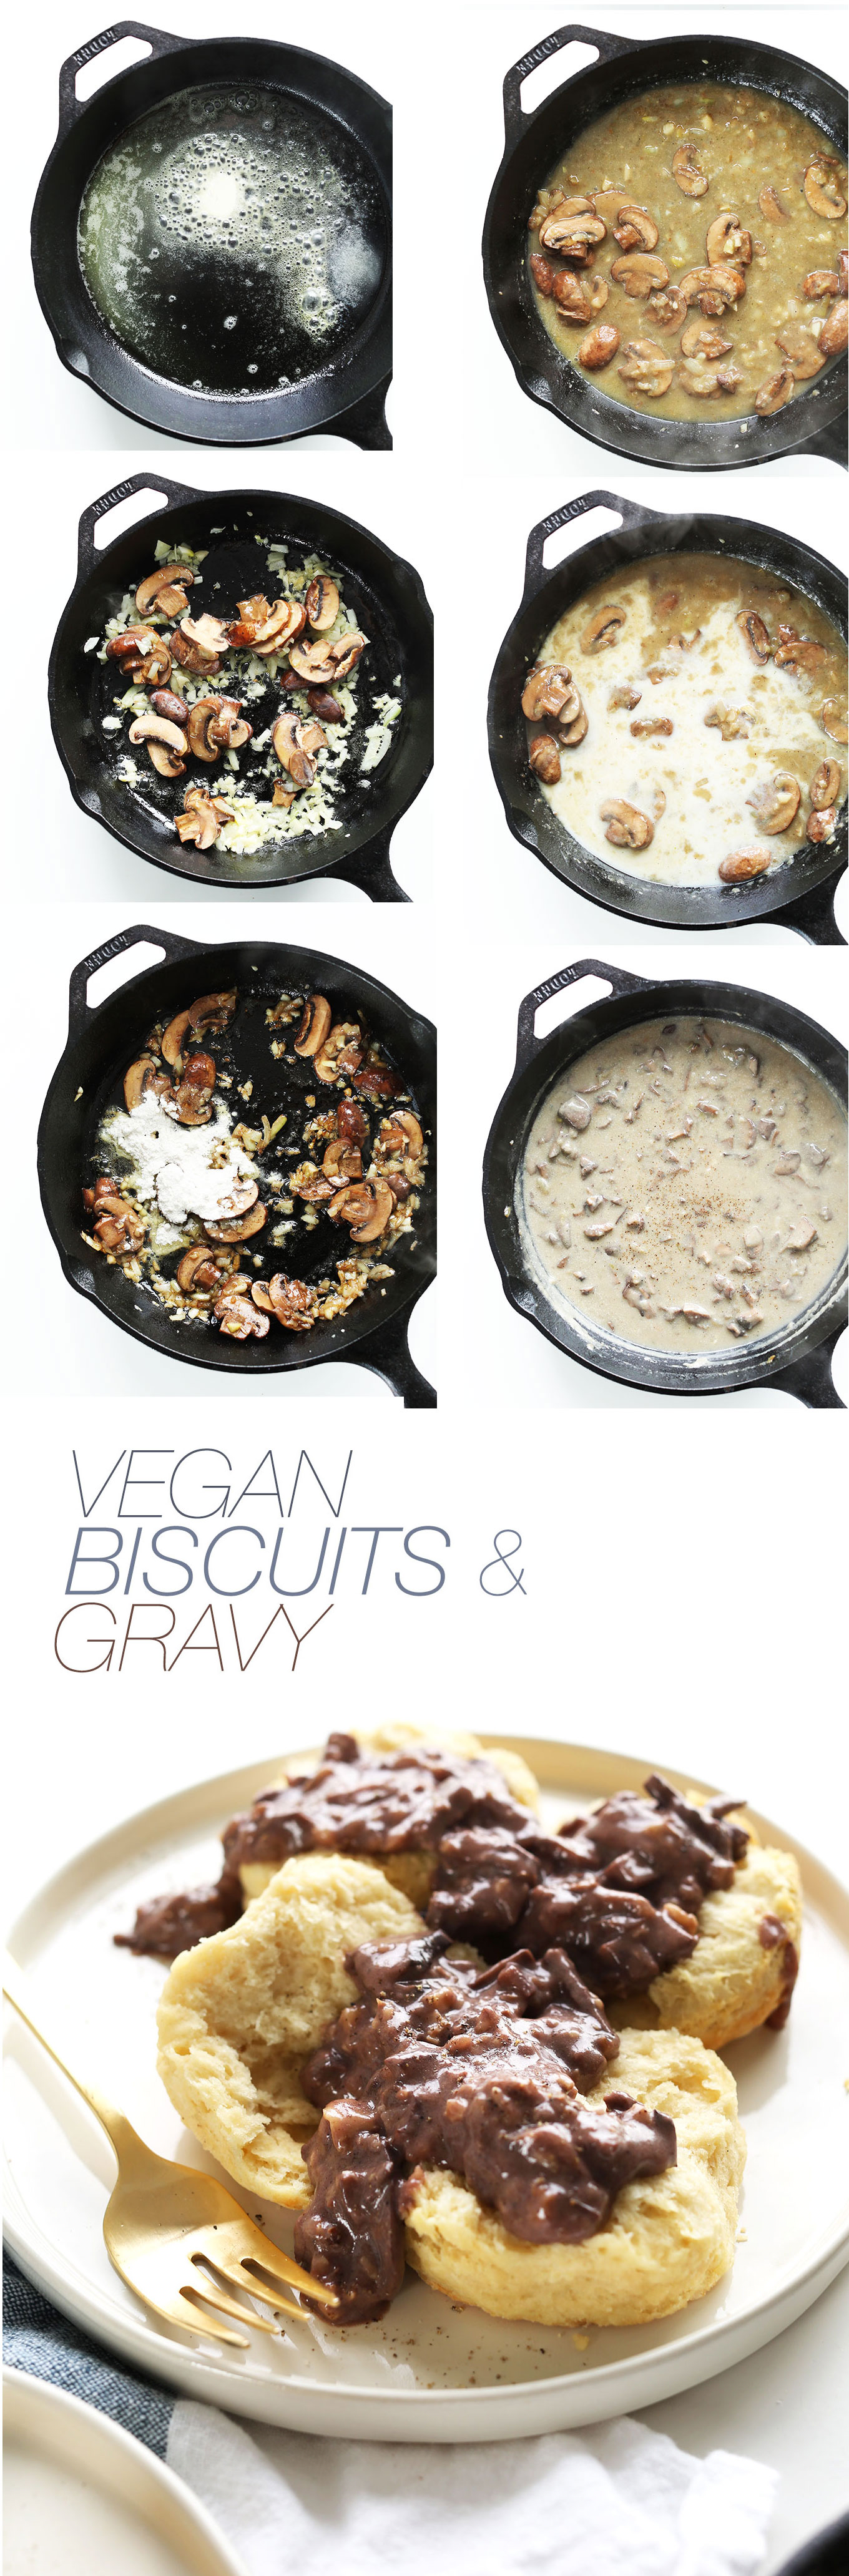 EASY Vegan Biscuits and Gravy! #vegan #minimalistbaker